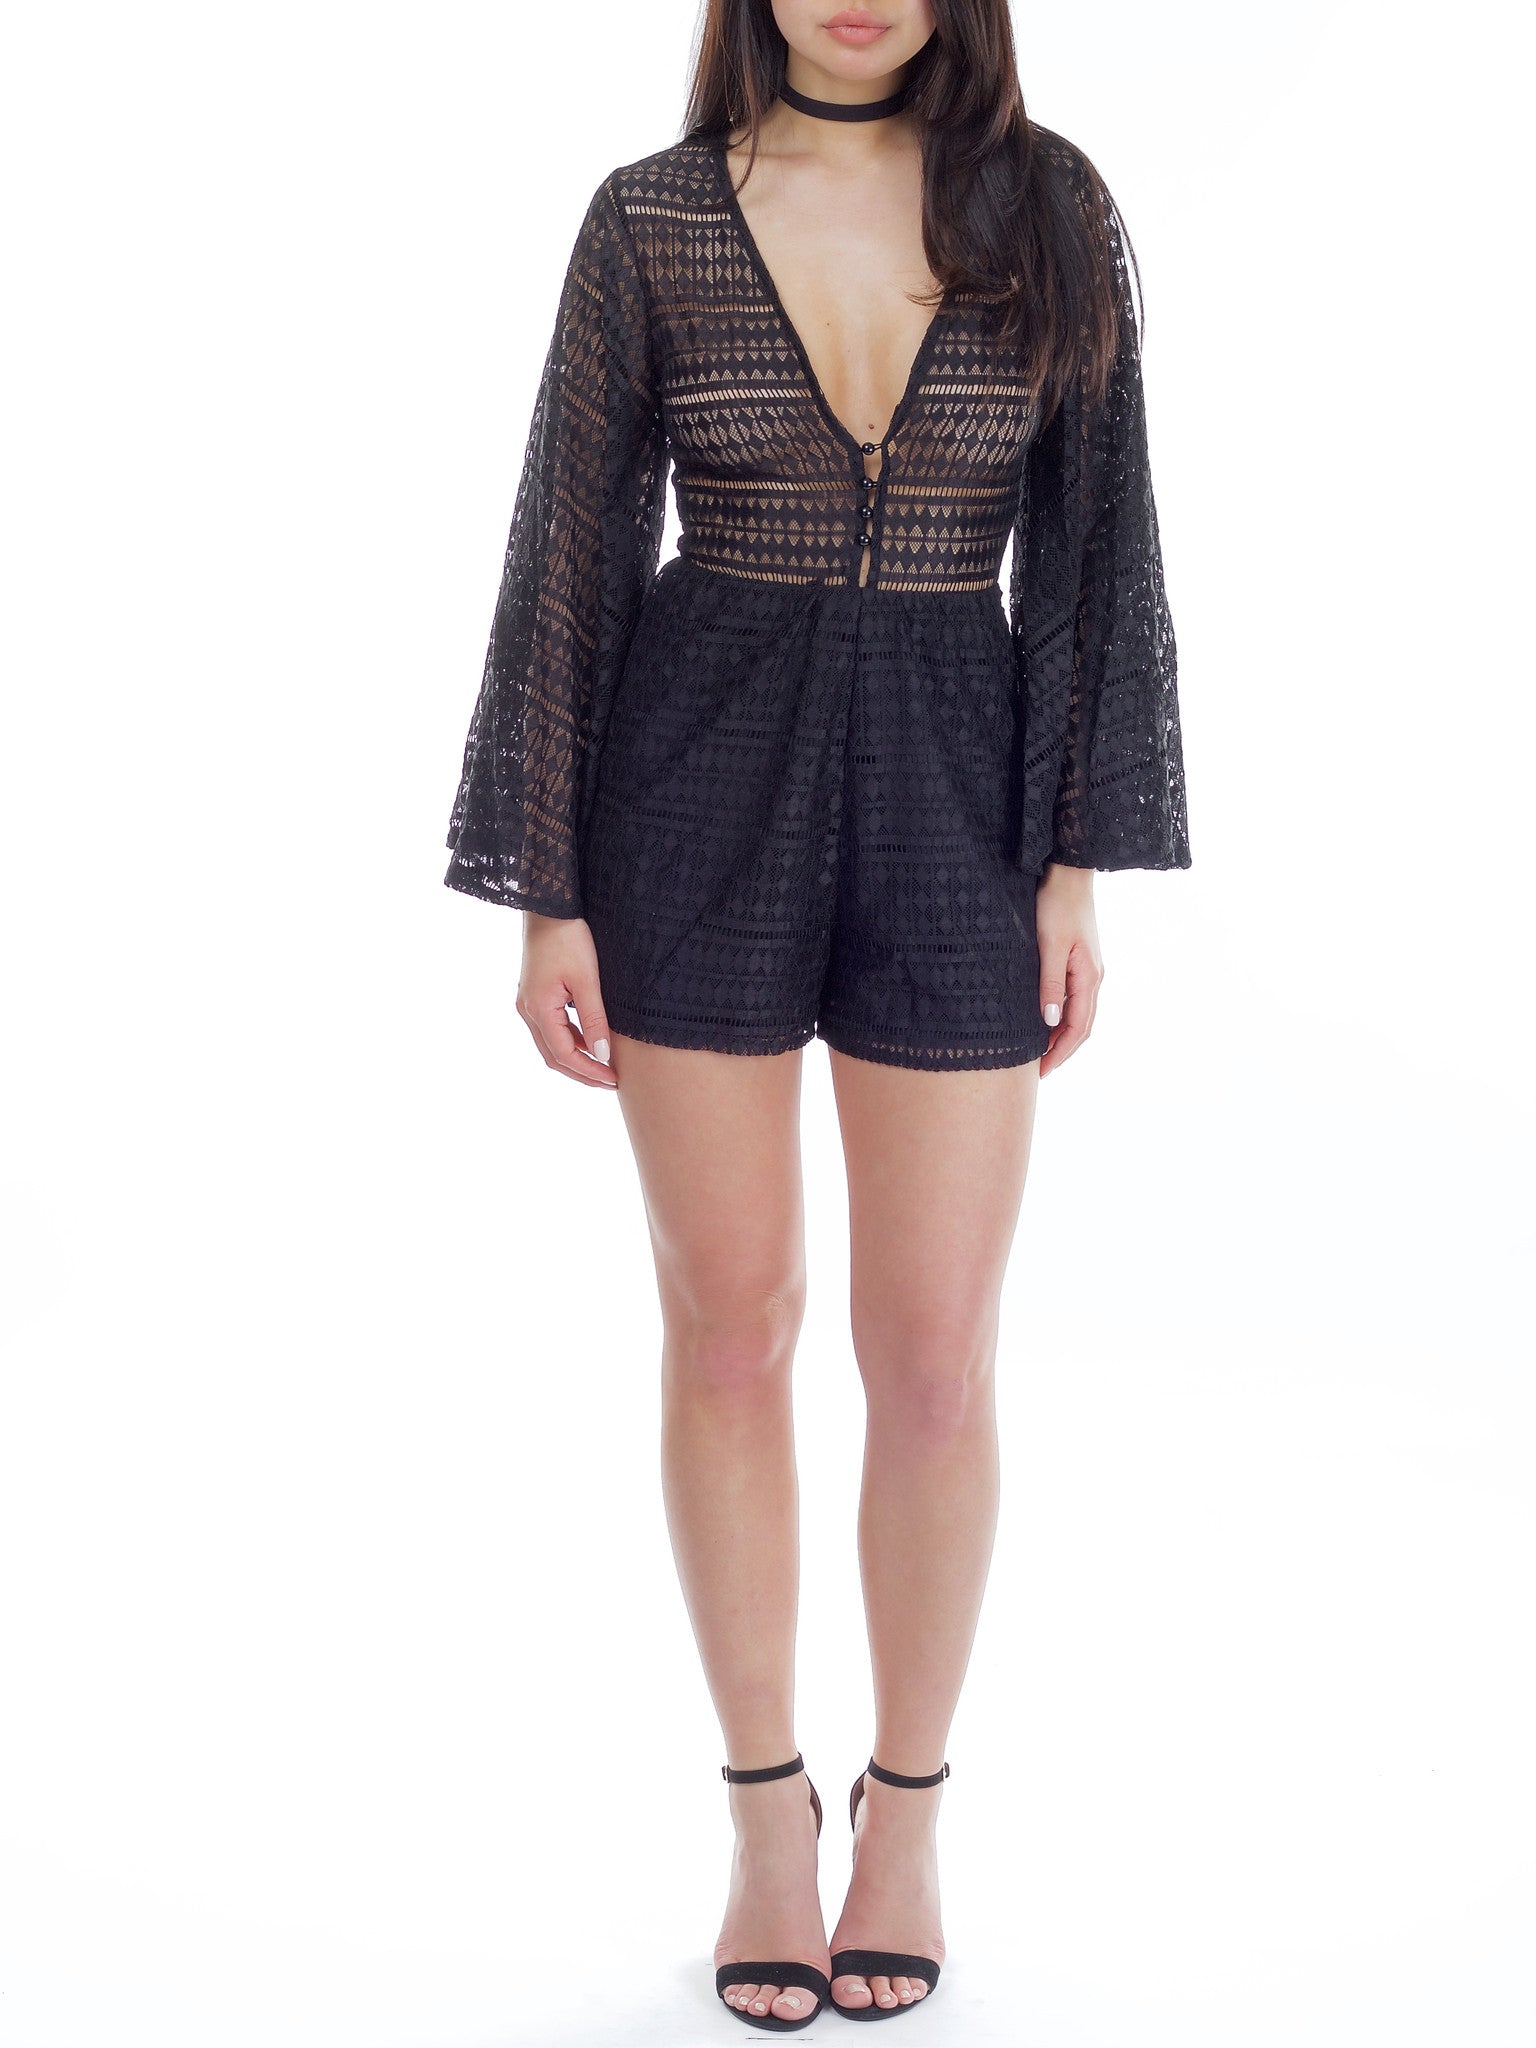 GYPSY Romper - PRADEGAL